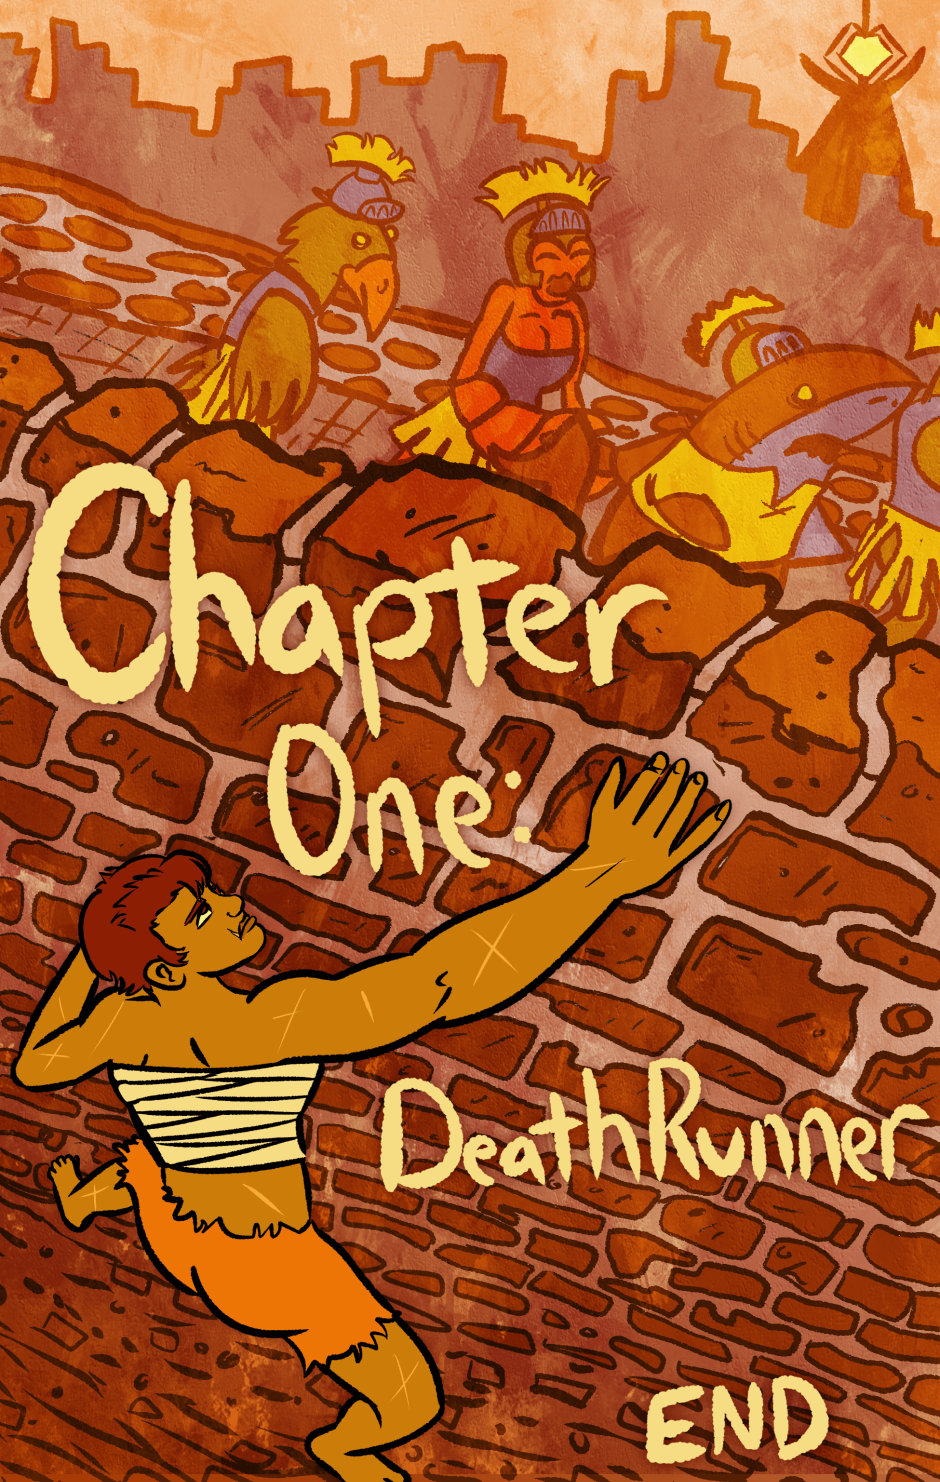 8/16/15 Chapter 1: Deathrunner End